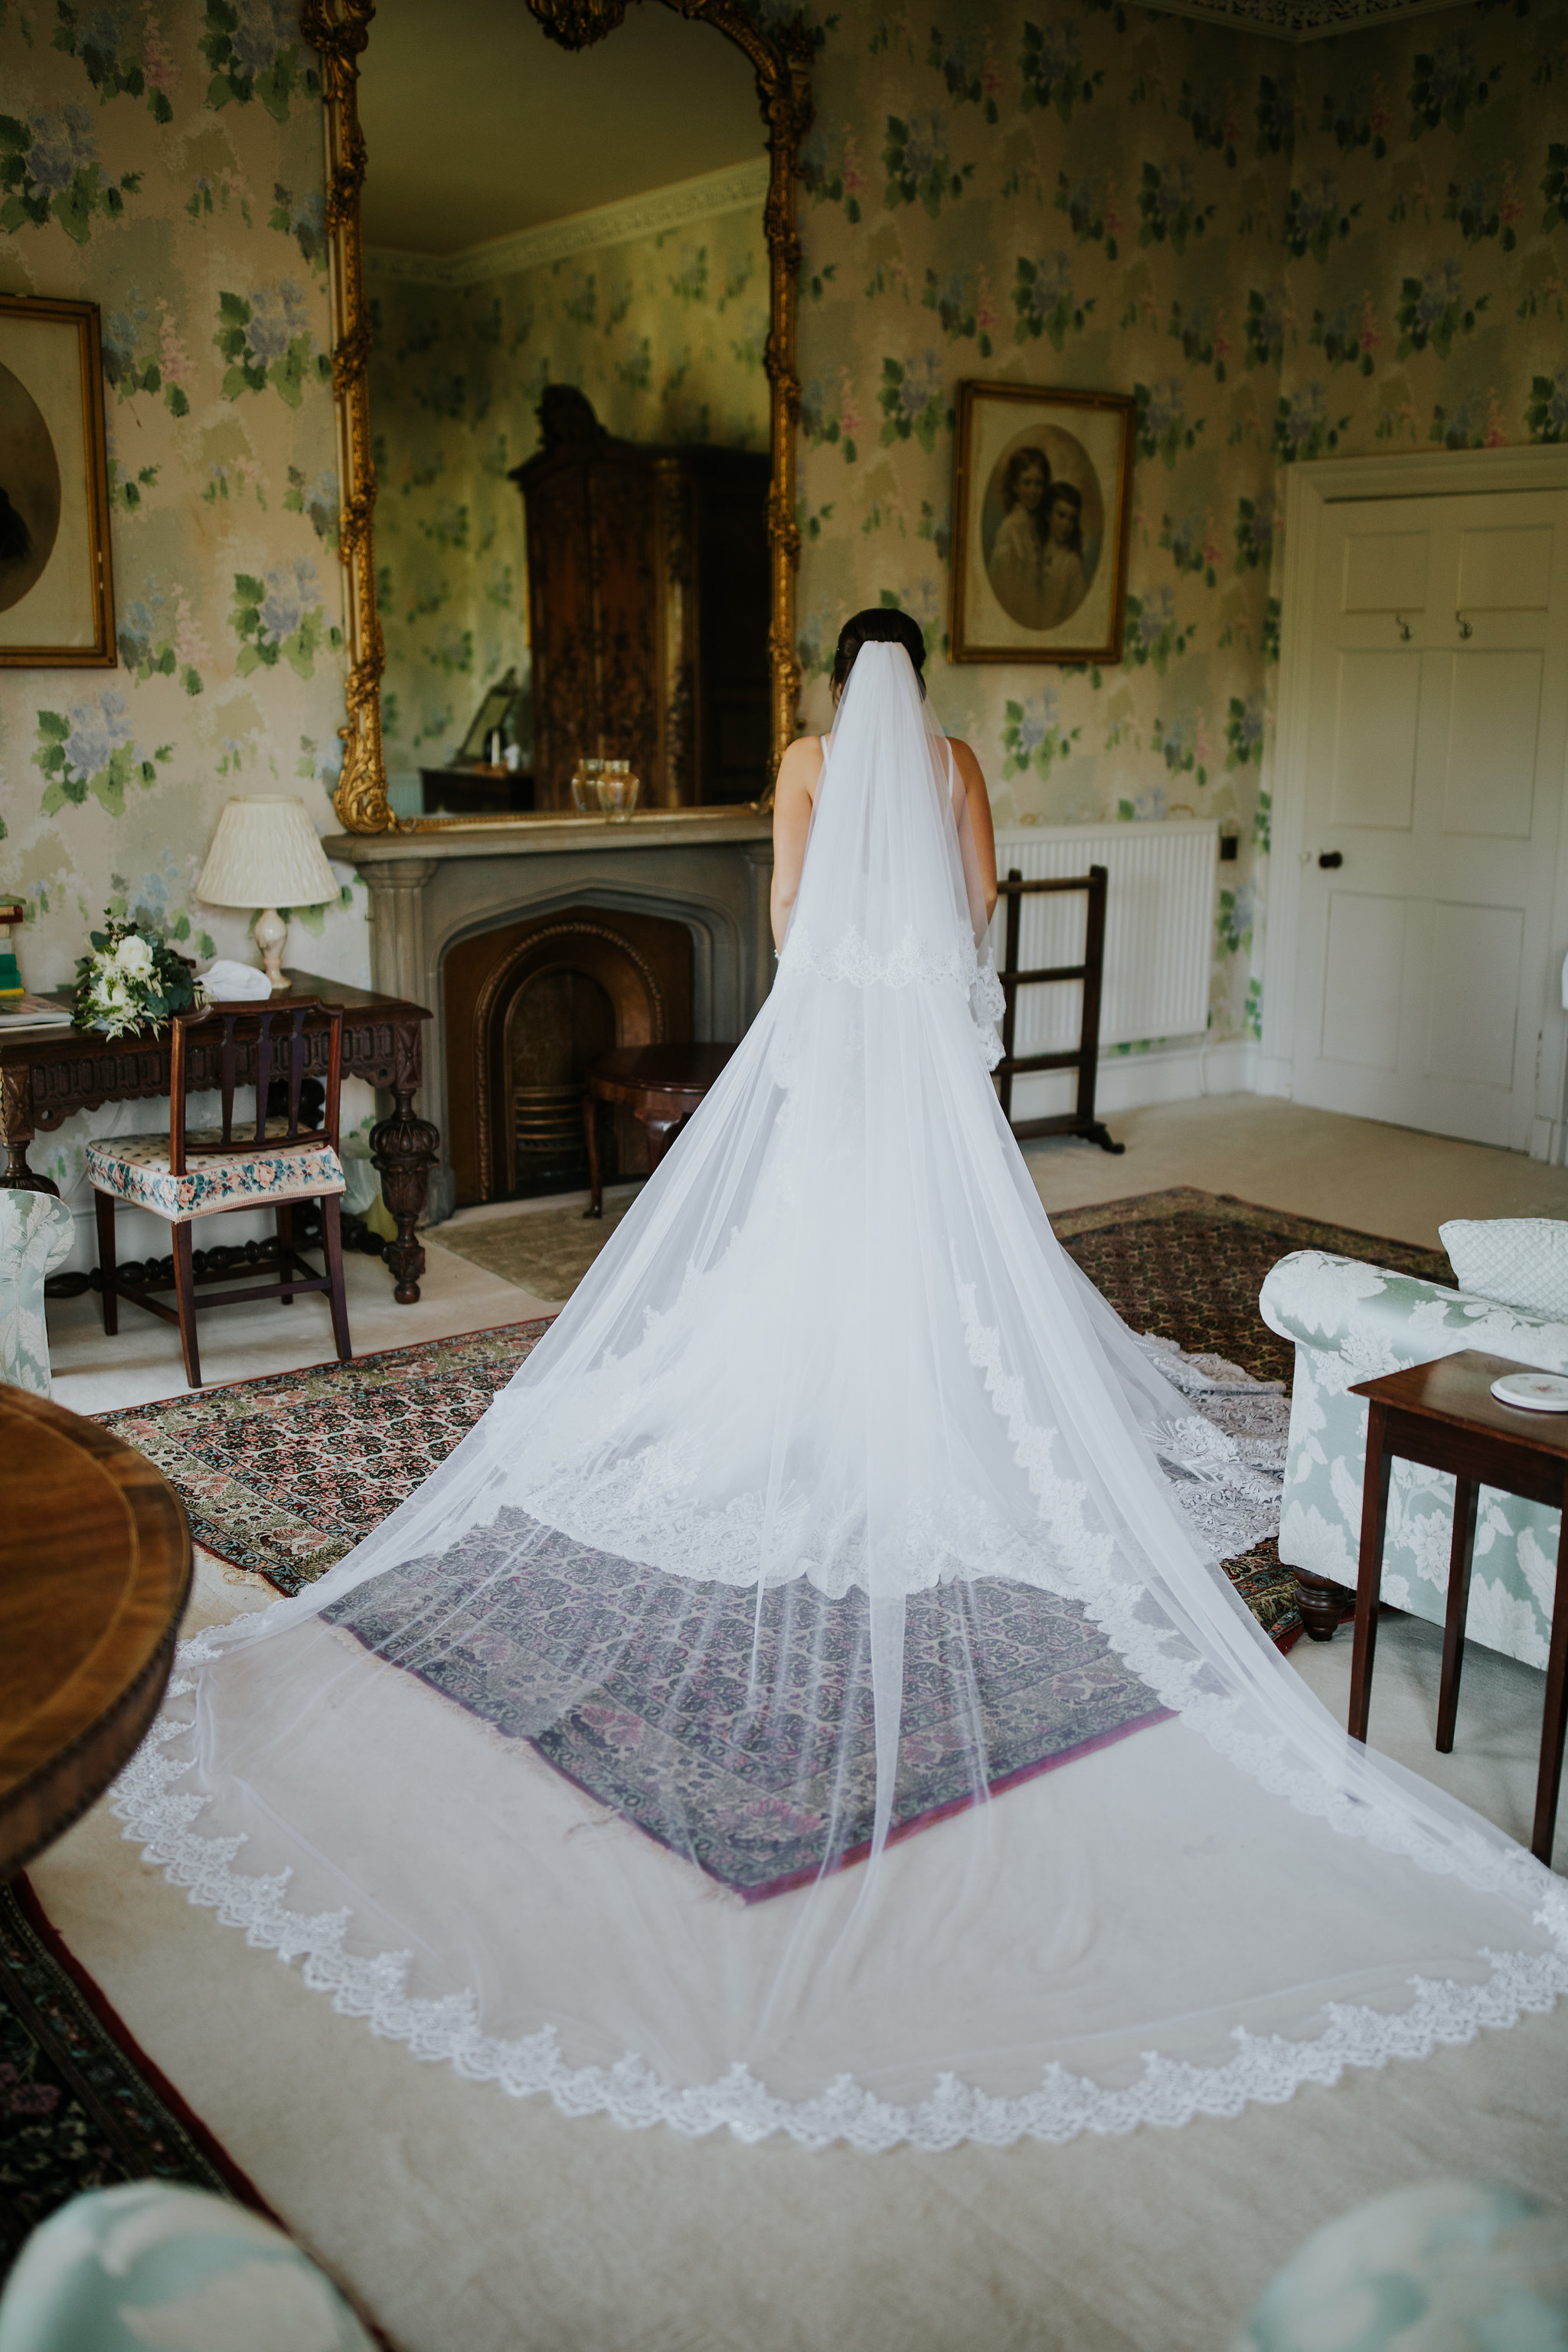 Duns_Castle_wedding_photographer_ross_alexander_photography (40).jpg